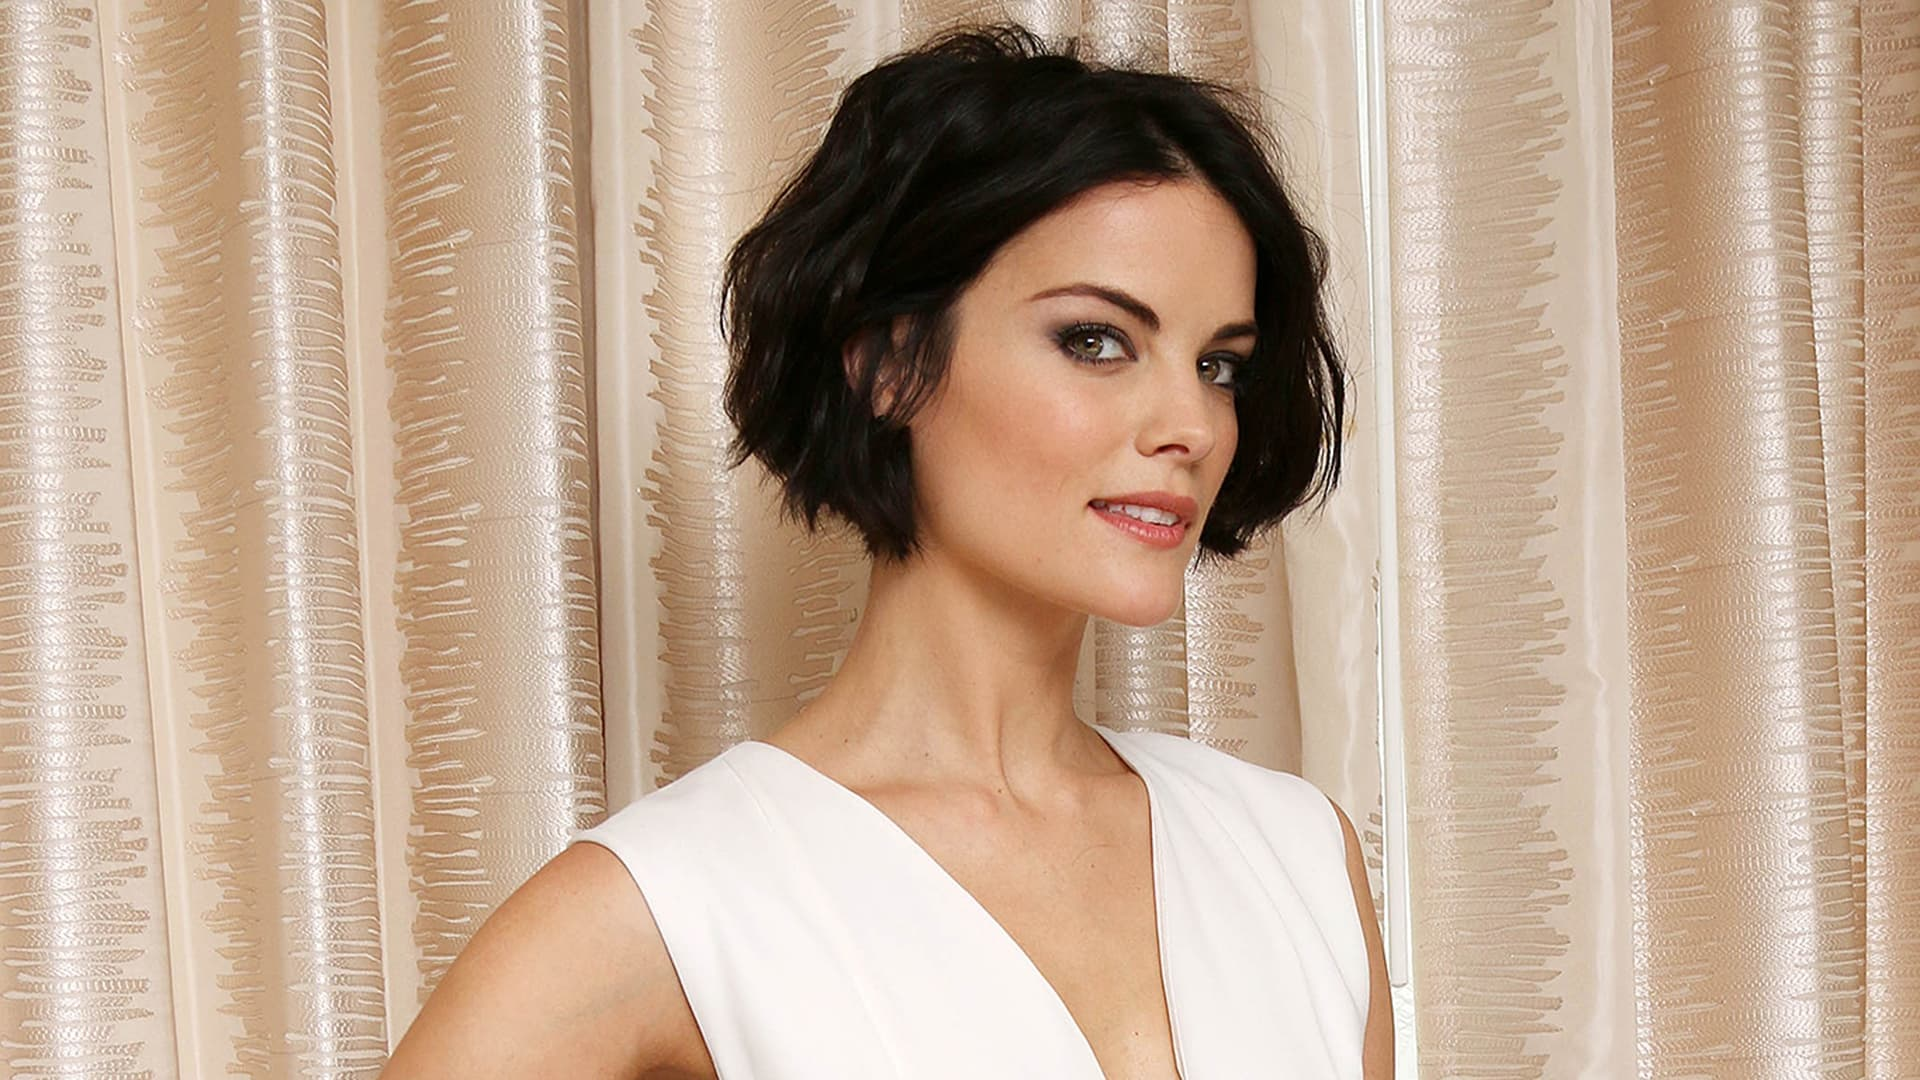 Hd Wallpapers Of Cars And Bikes Free Download 16 Jaimie Alexander Wallpapers Hd High Quality Resolution